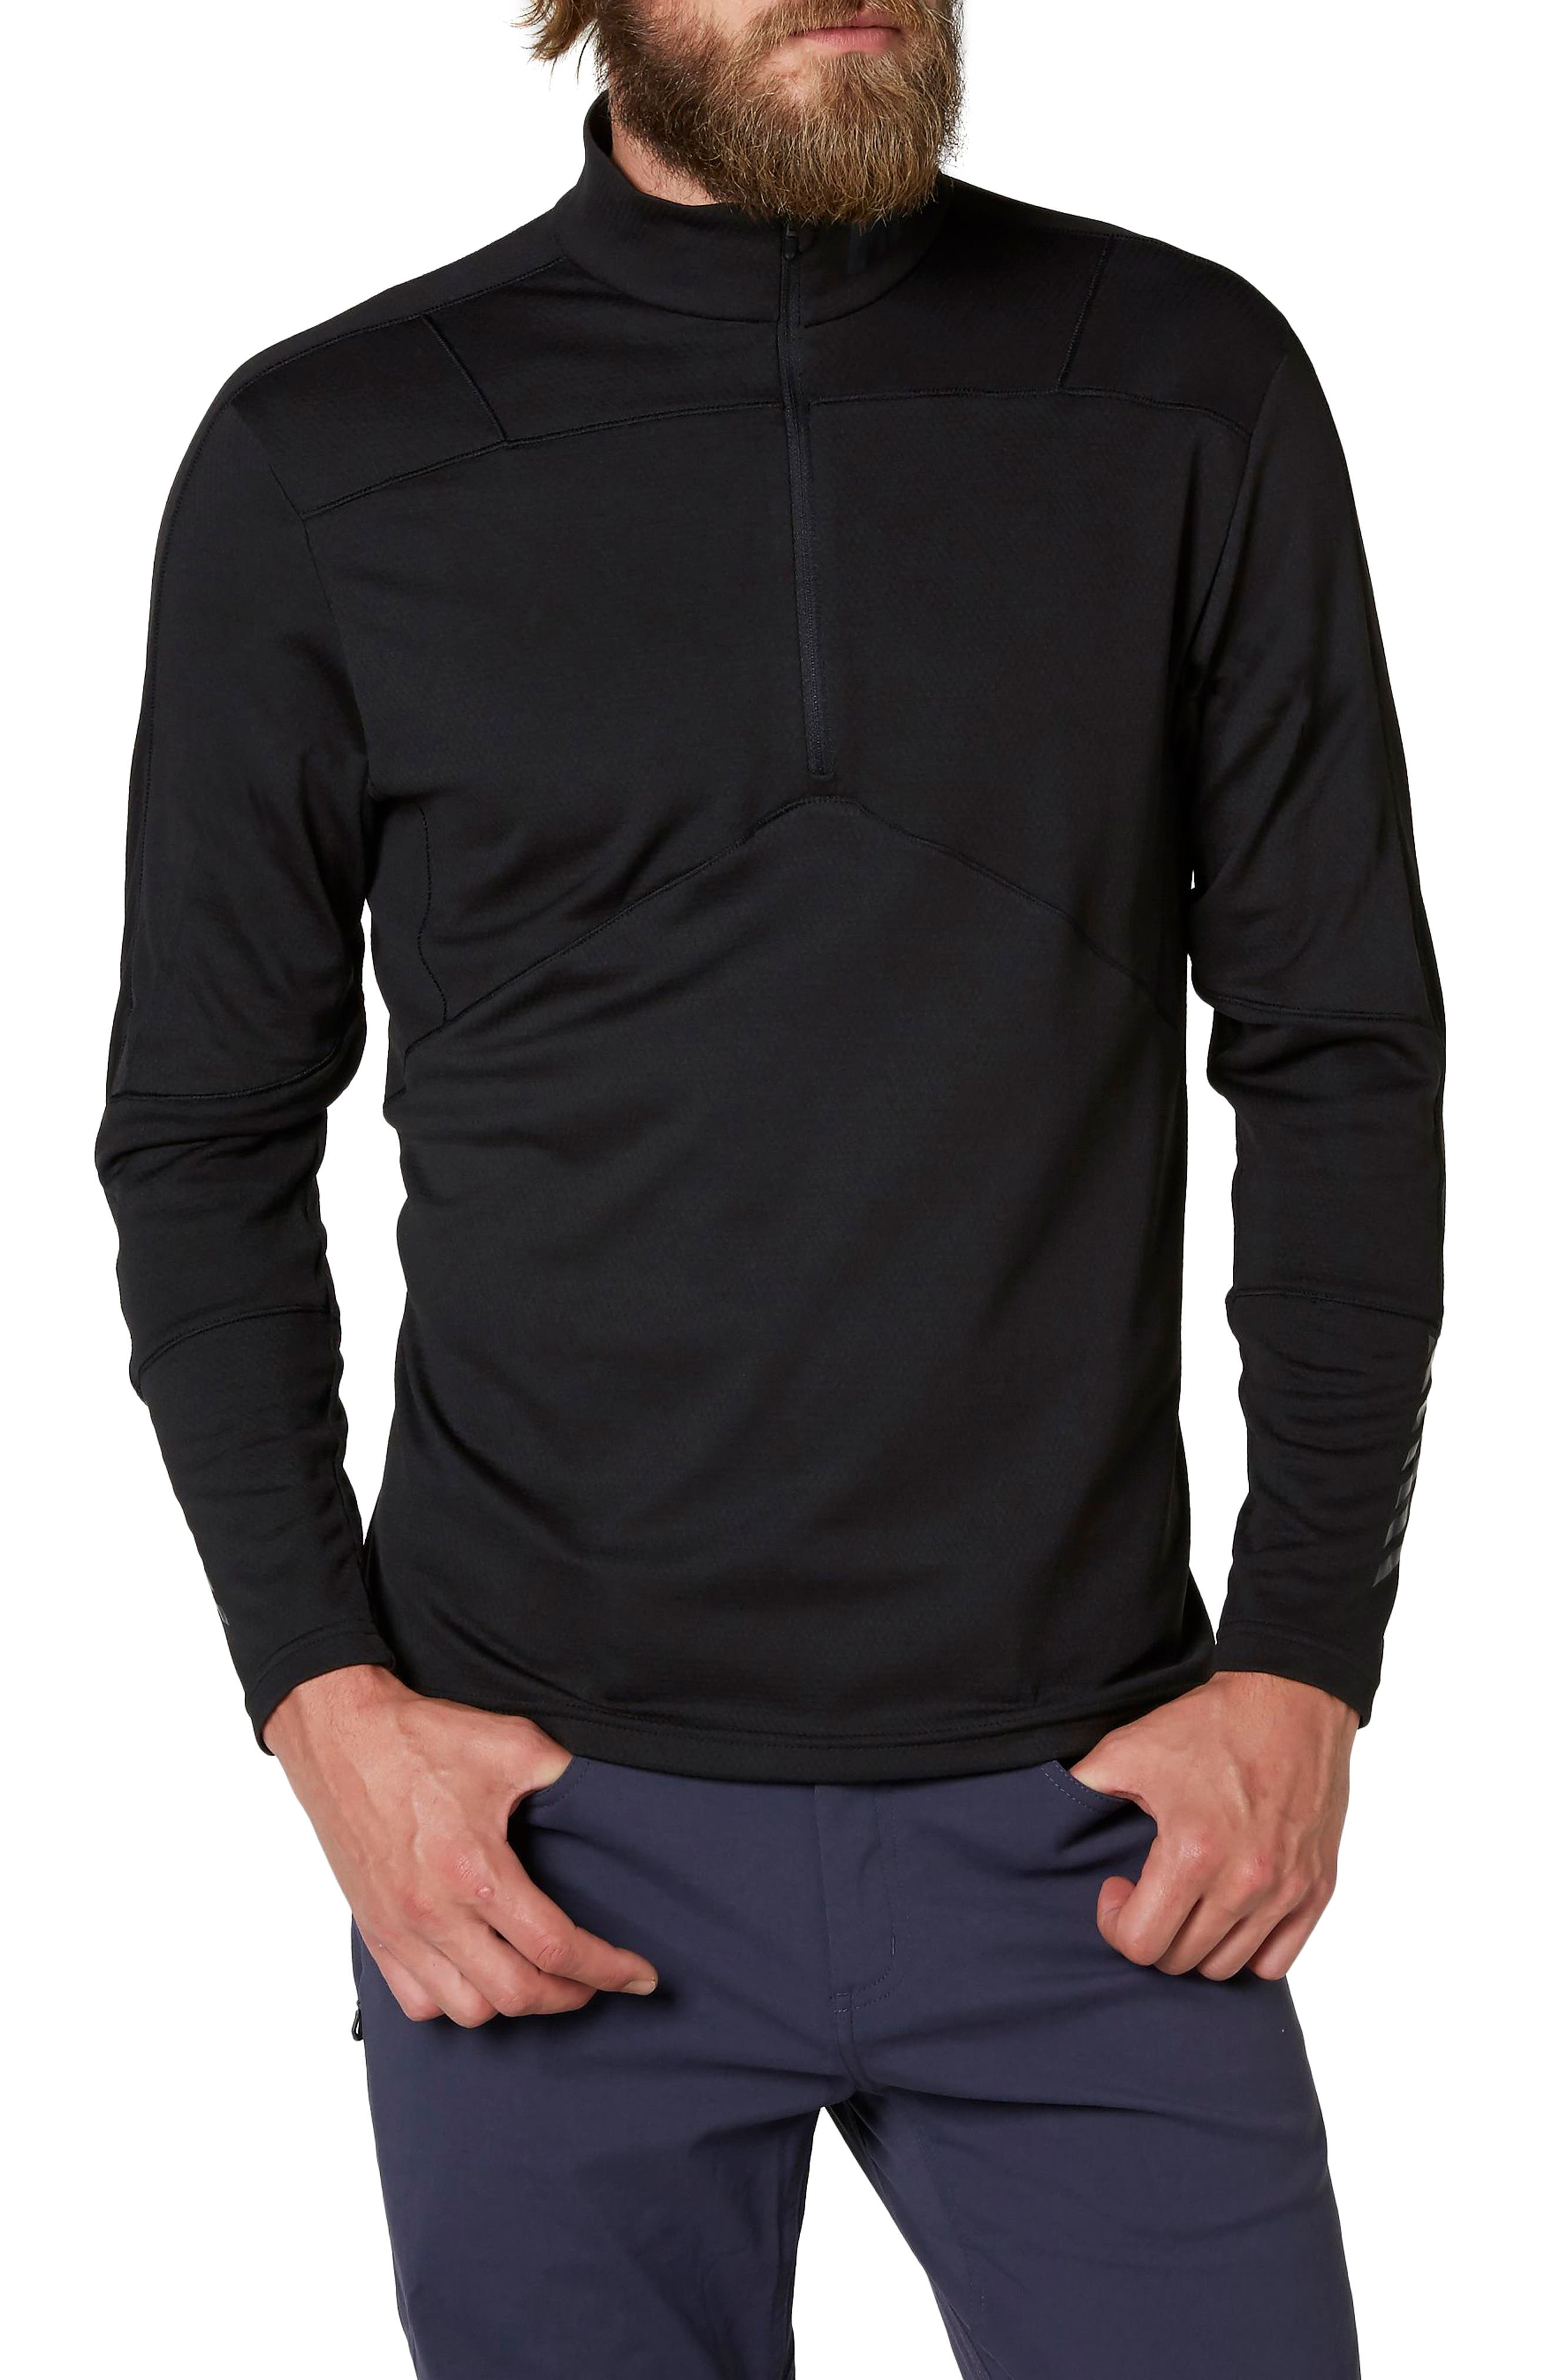 HH<sup>®</sup> Lifa Quarter Zip Pullover,                         Main,                         color, 001